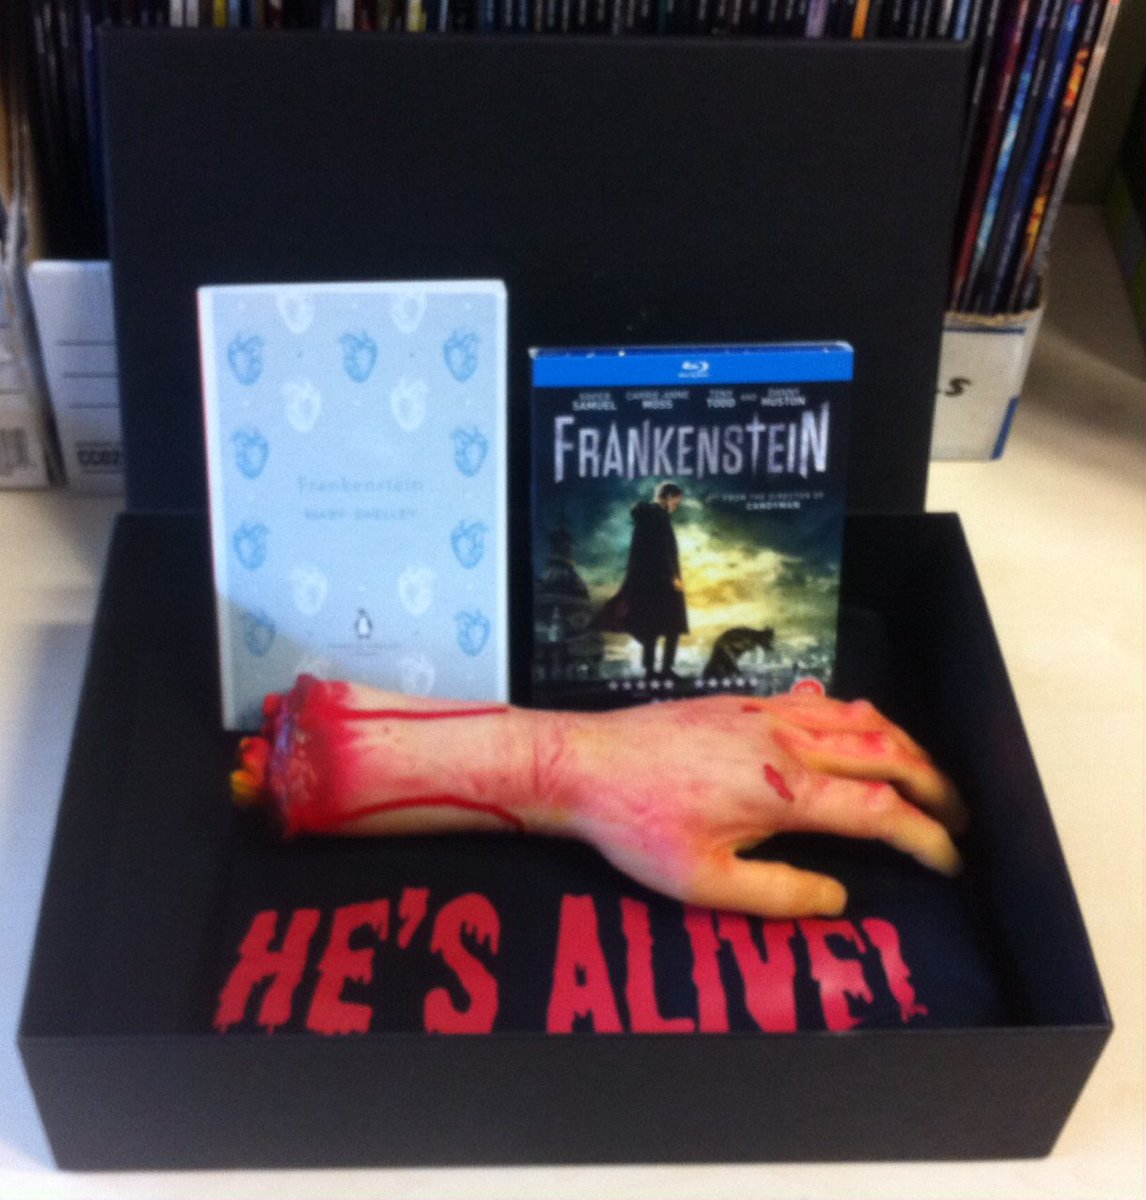 We've got goodies for @SignatureEntUK's new #FrankensteinDVD to give away. RT this; we'll pick a winner at 5pm (UK). https://t.co/Rm1a9rKL6Q